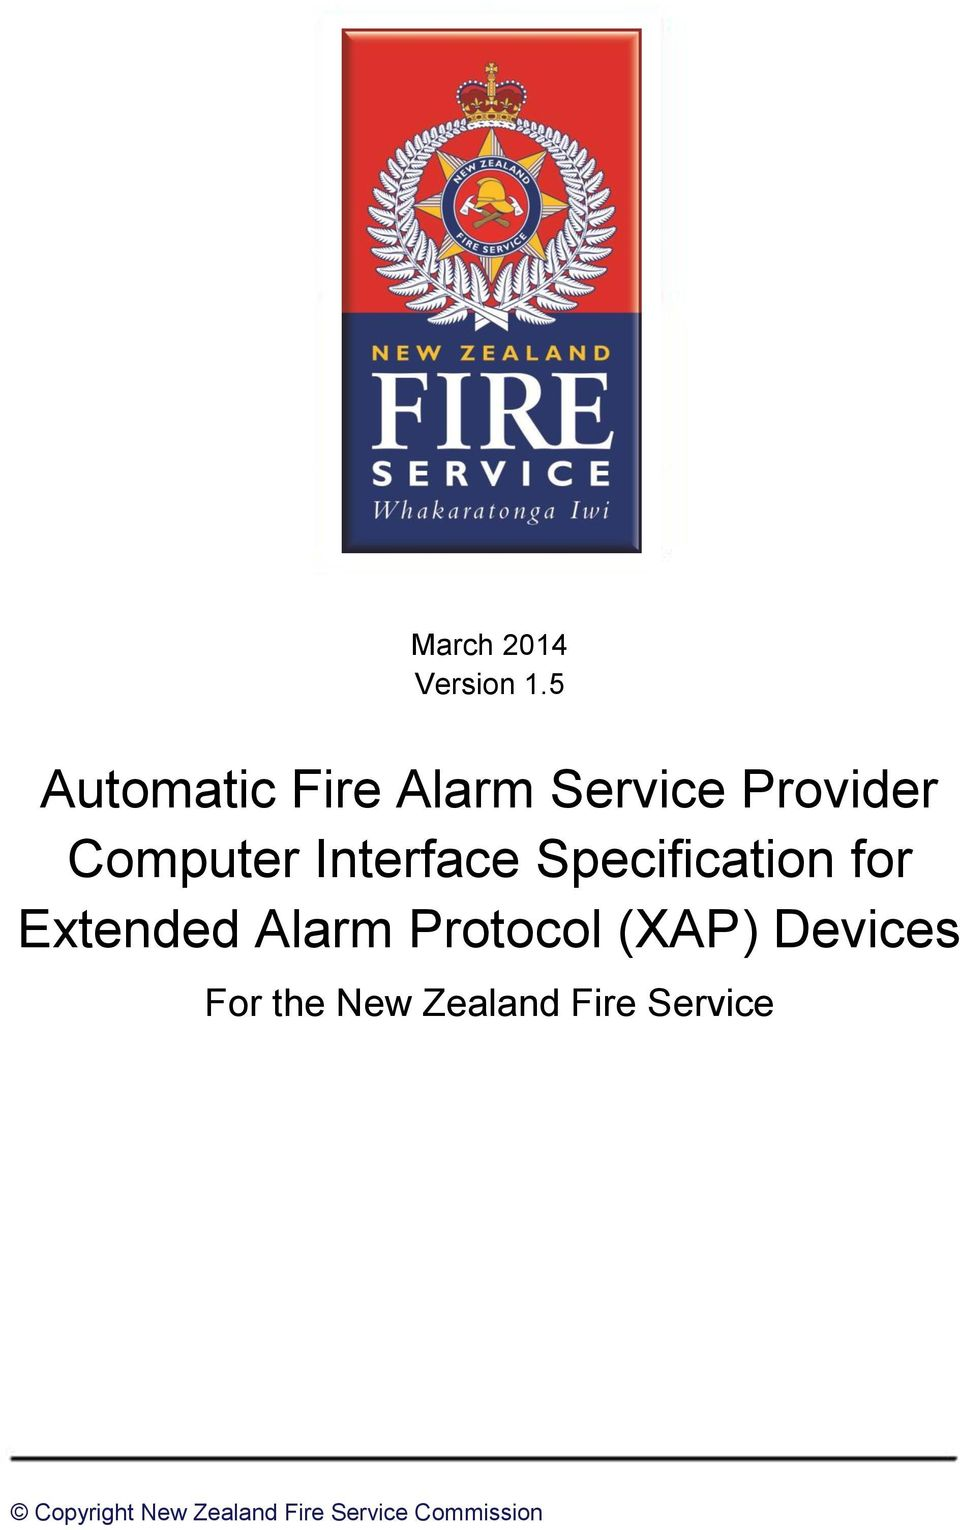 Interface Specification for Extended Alarm Protocol